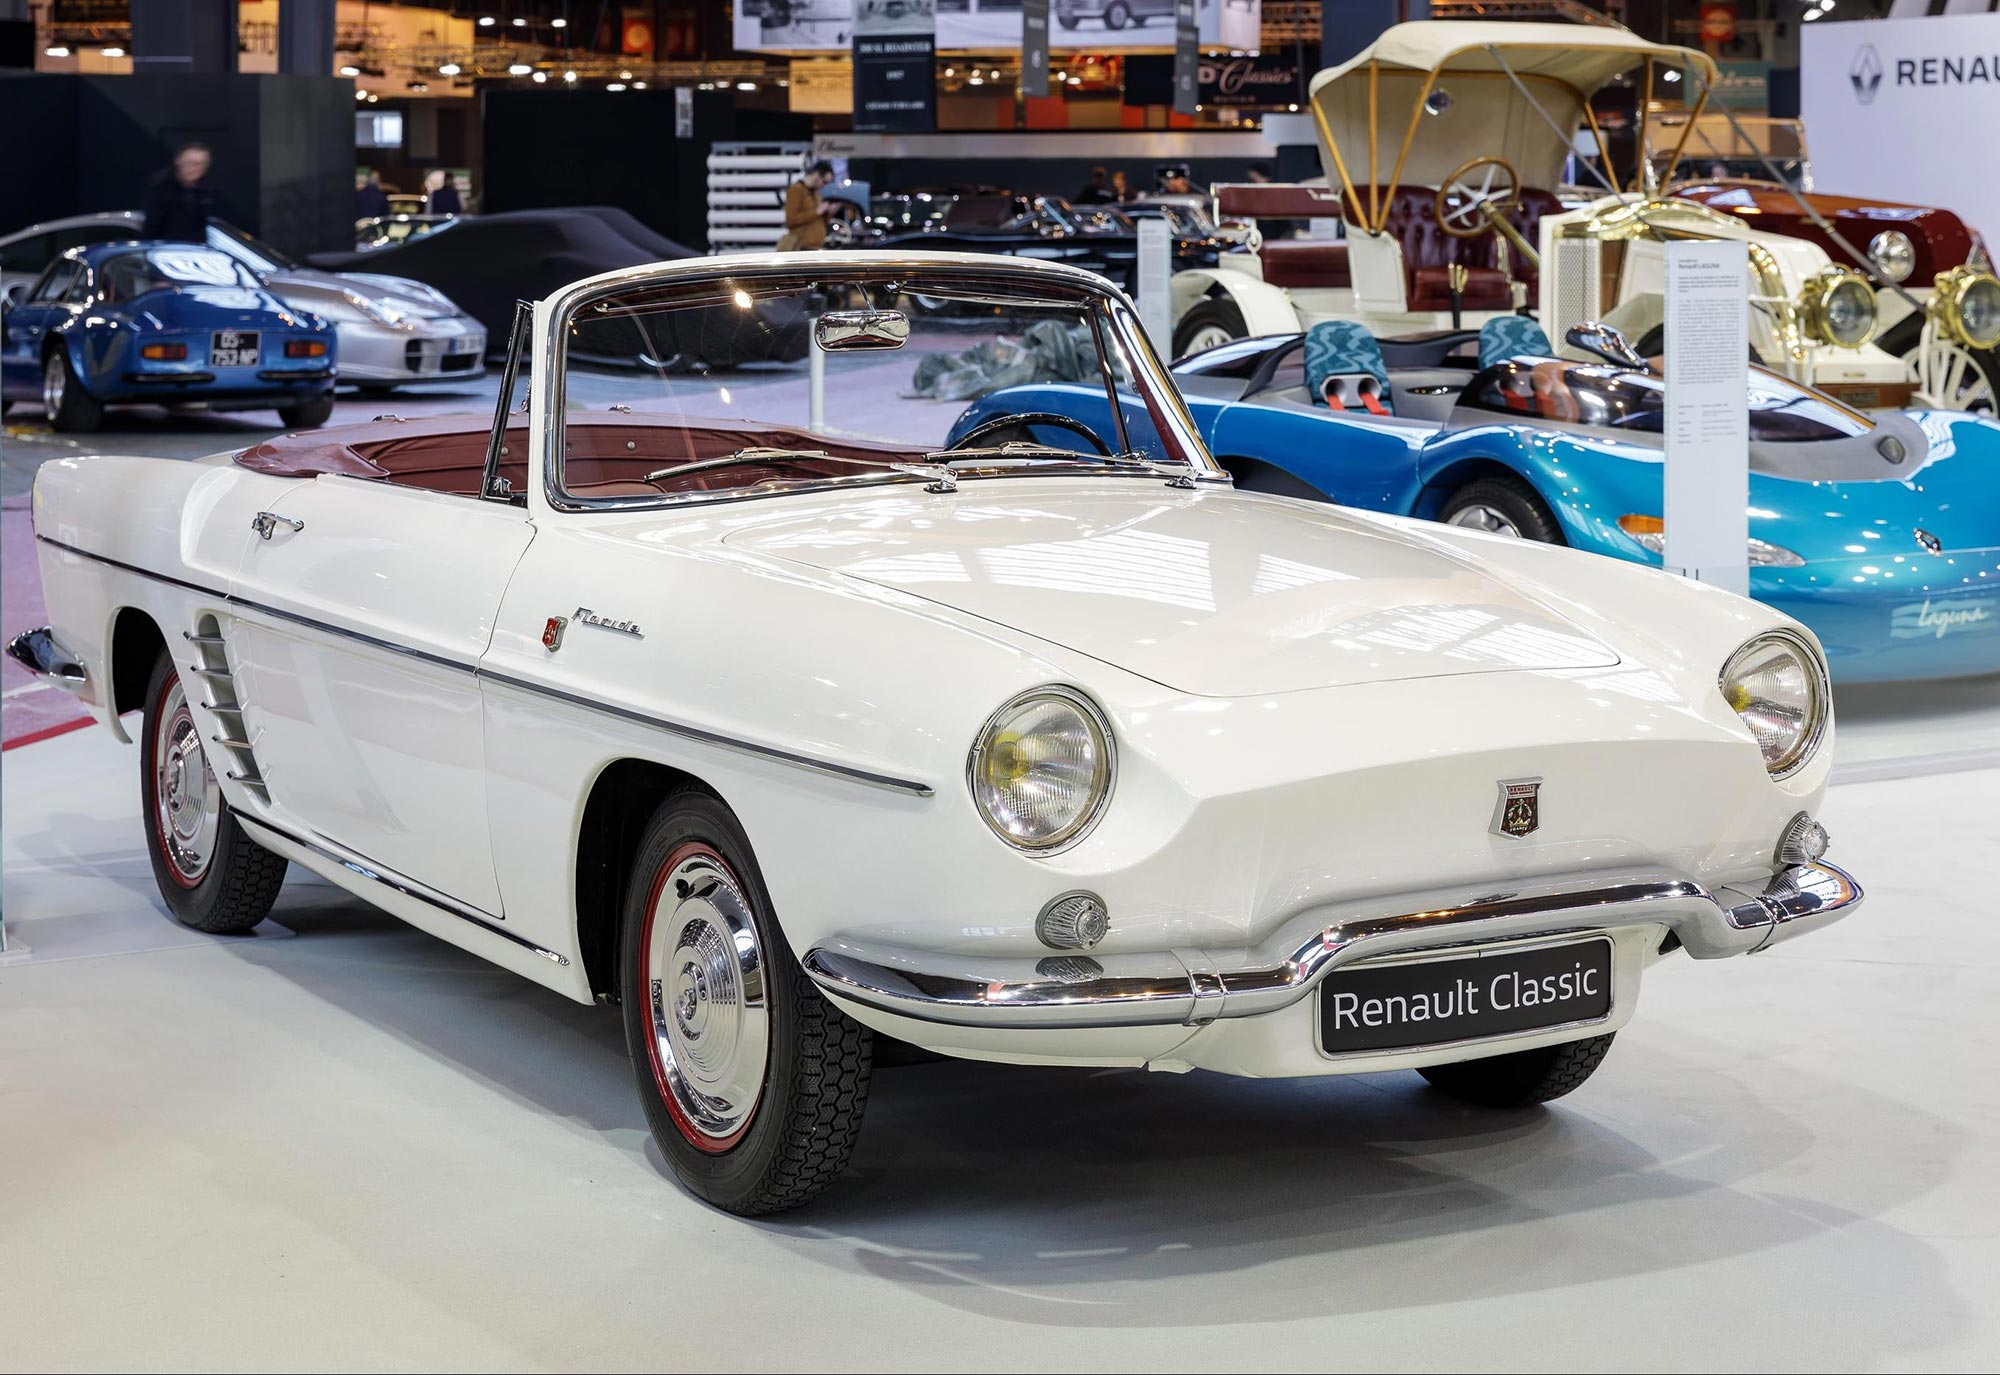 Renault_Floride_1961_at_Retromobile_2017_(2).jpg